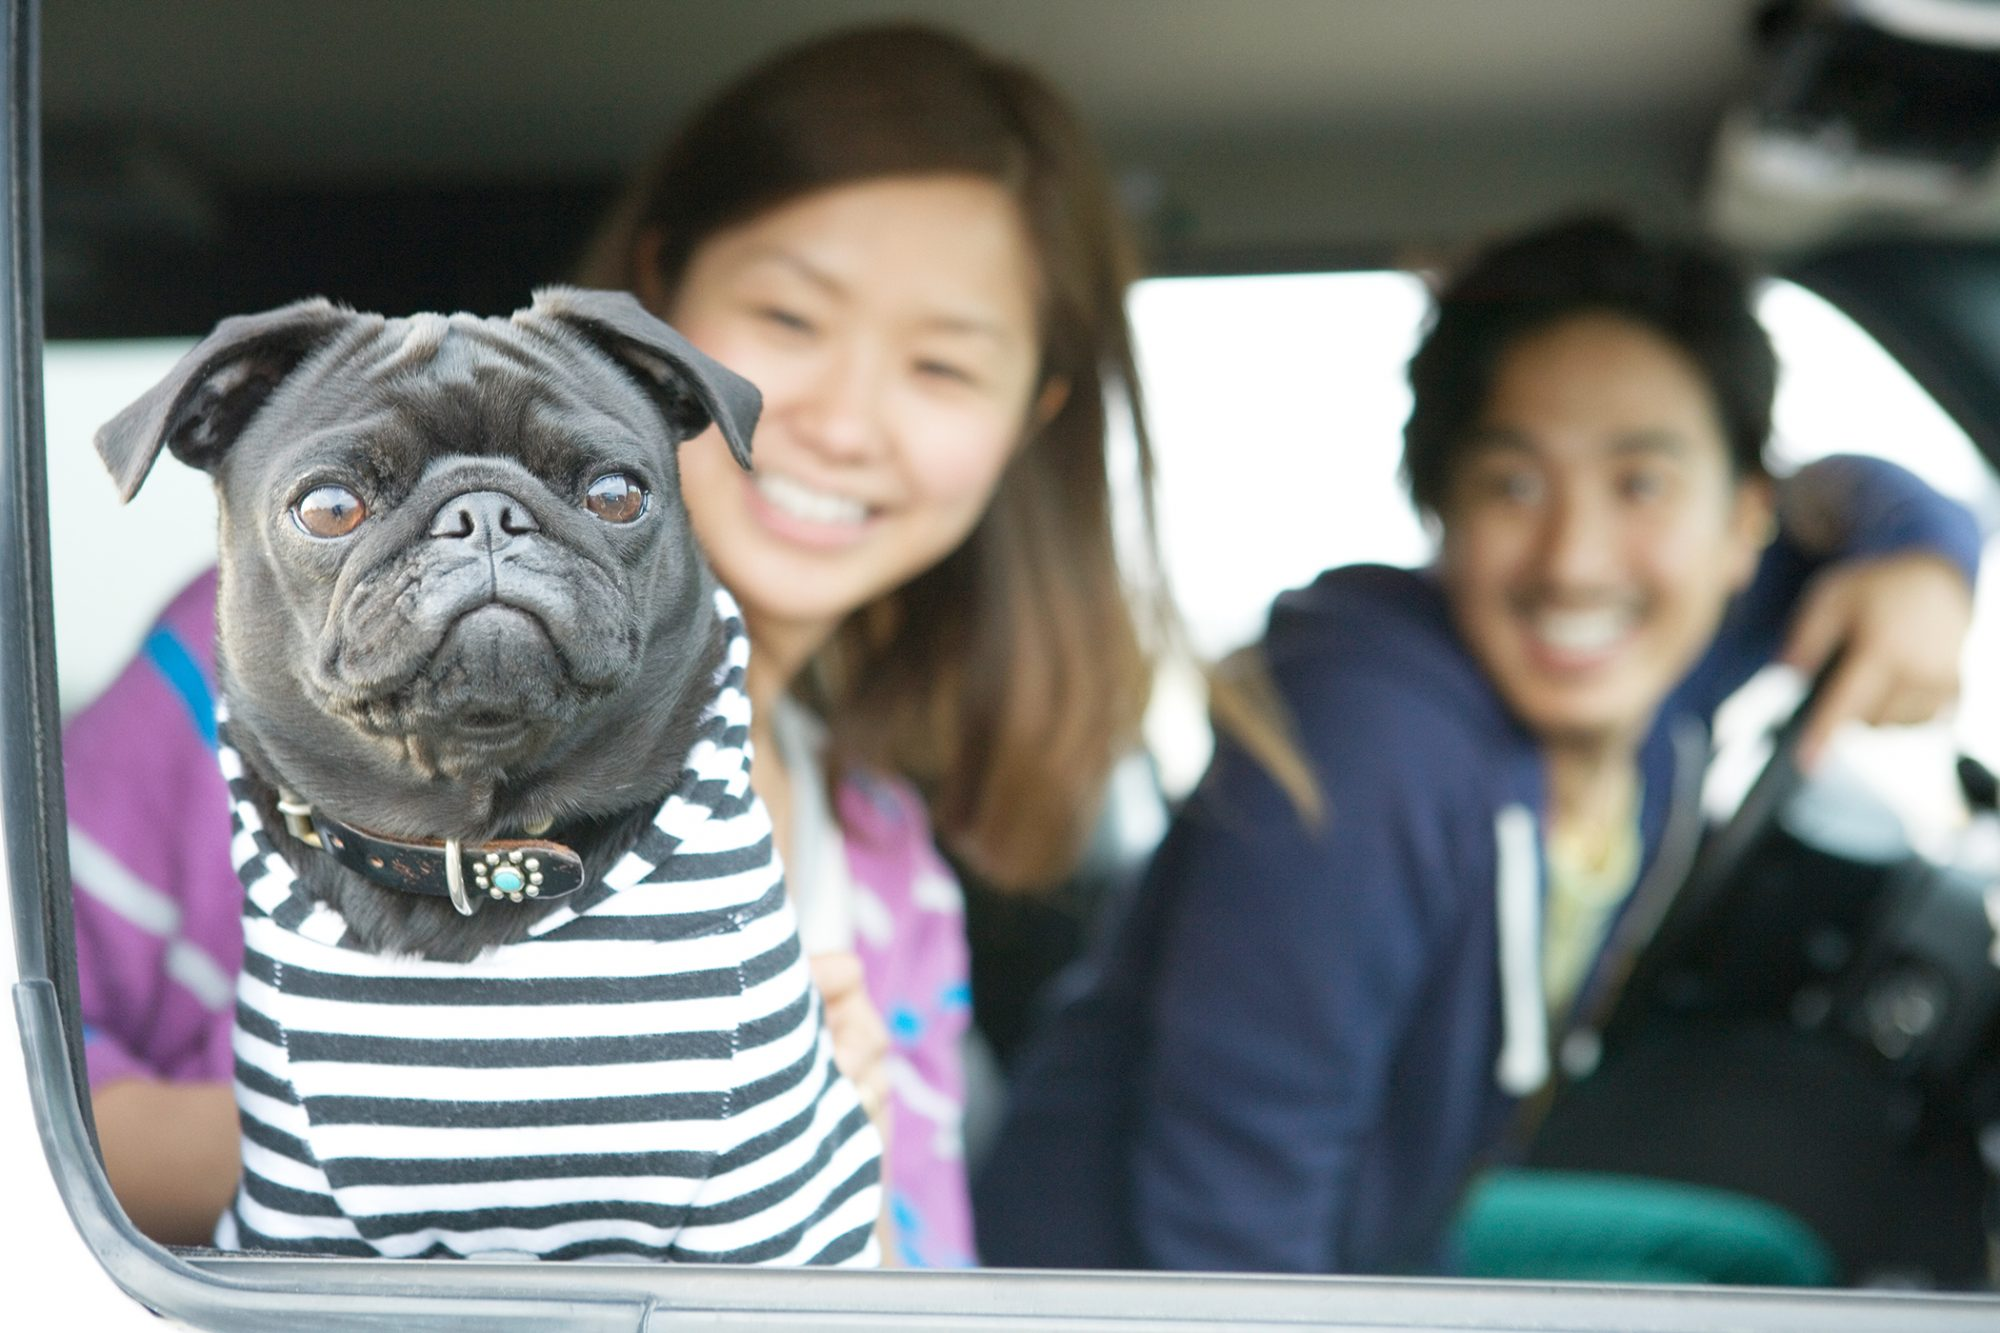 Black pug wearing a striped shirt looking out car window with her owners smiling in the back